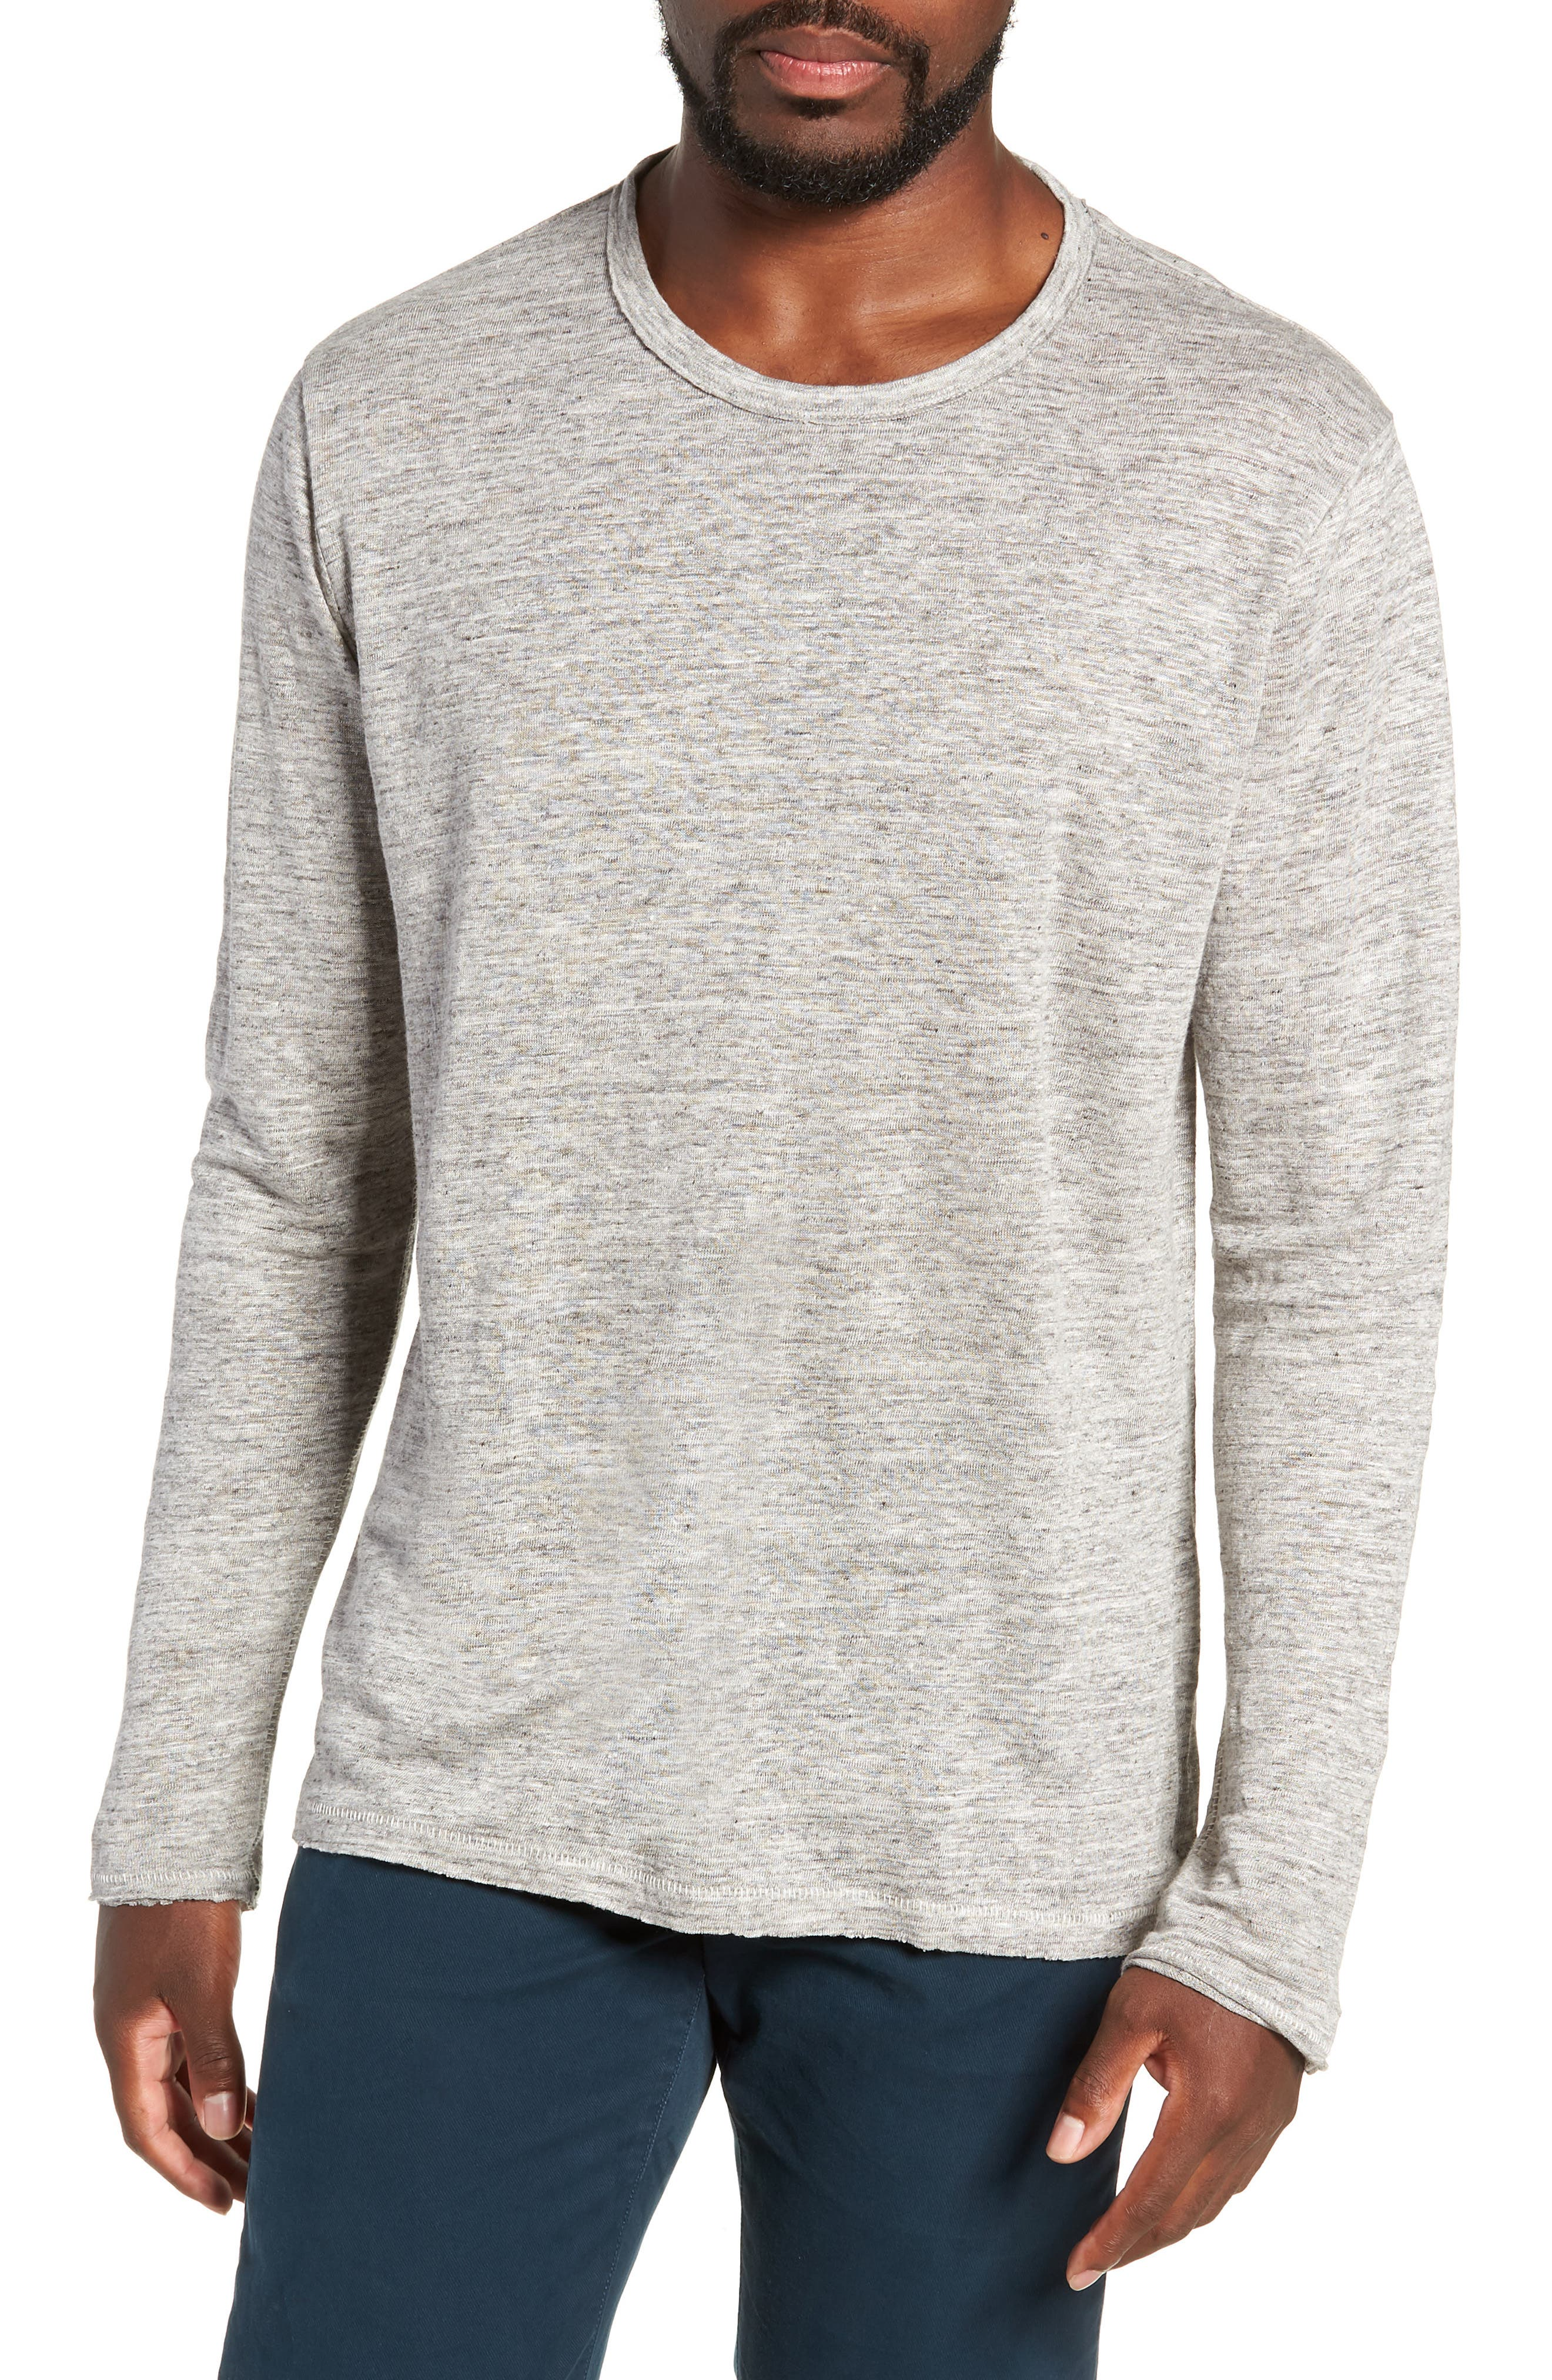 Owen Linen Long Sleeve T-Shirt,                             Main thumbnail 1, color,                             020